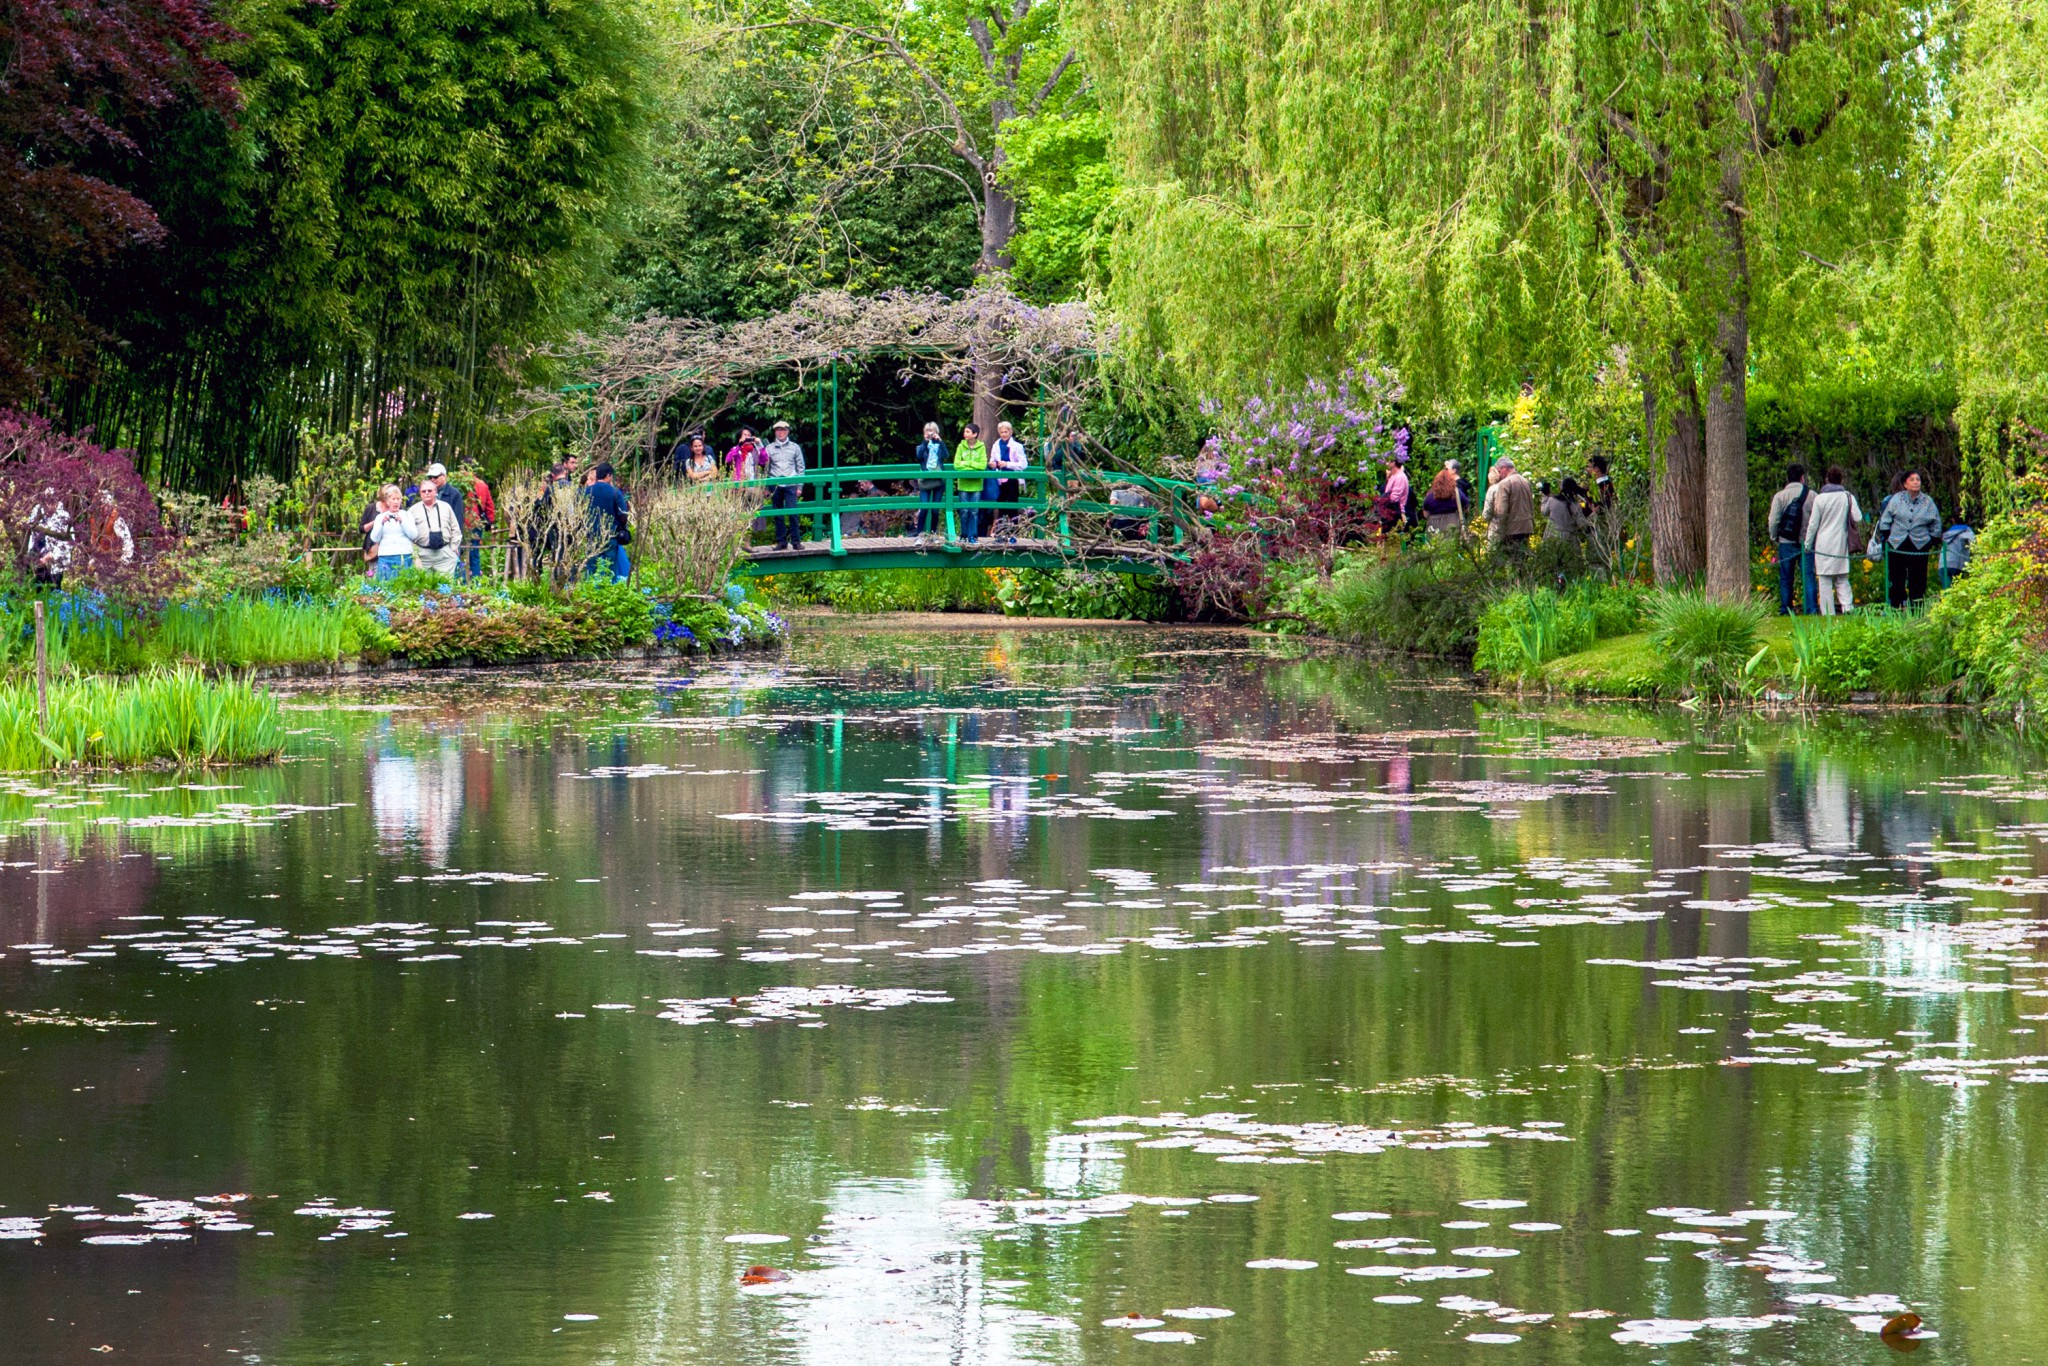 Merveilleux Monet Gardens Giverny © Michal Osmenda   Licence [CC BY 2